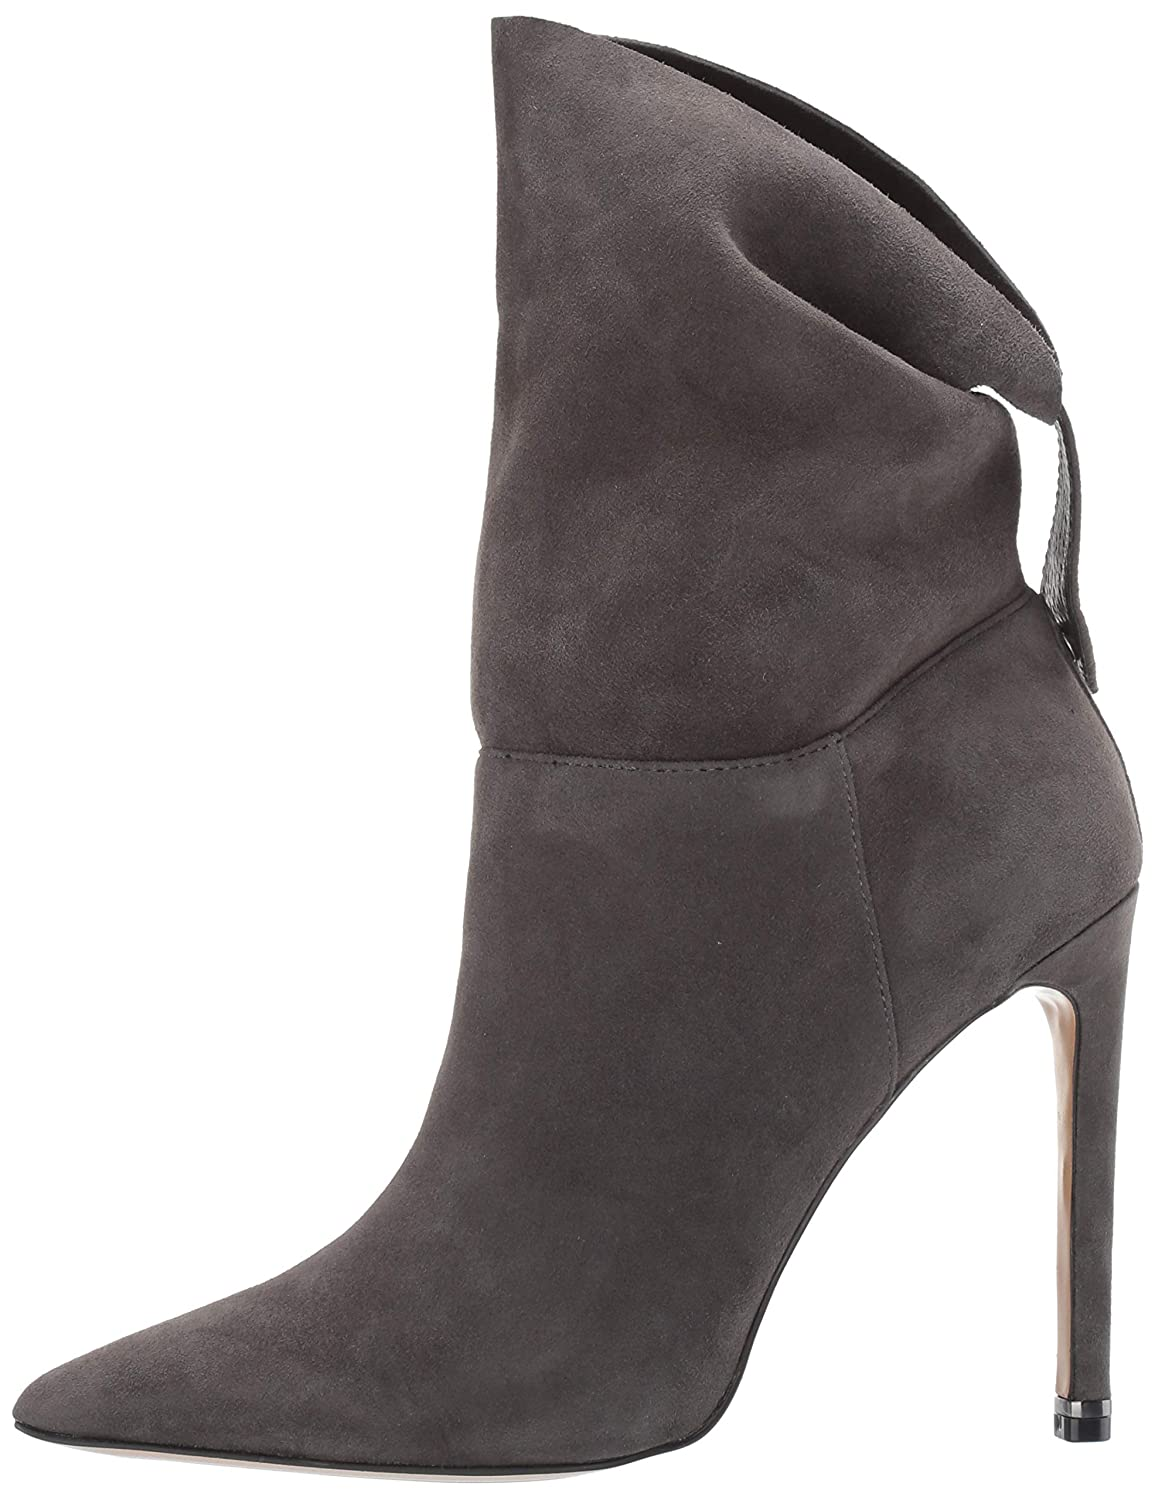 2a0090ea6 Amazon.com | Kenneth Cole New York Women's Riley 110 Mm Heel Slouch Bootie  Ankle Boot | Ankle & Bootie